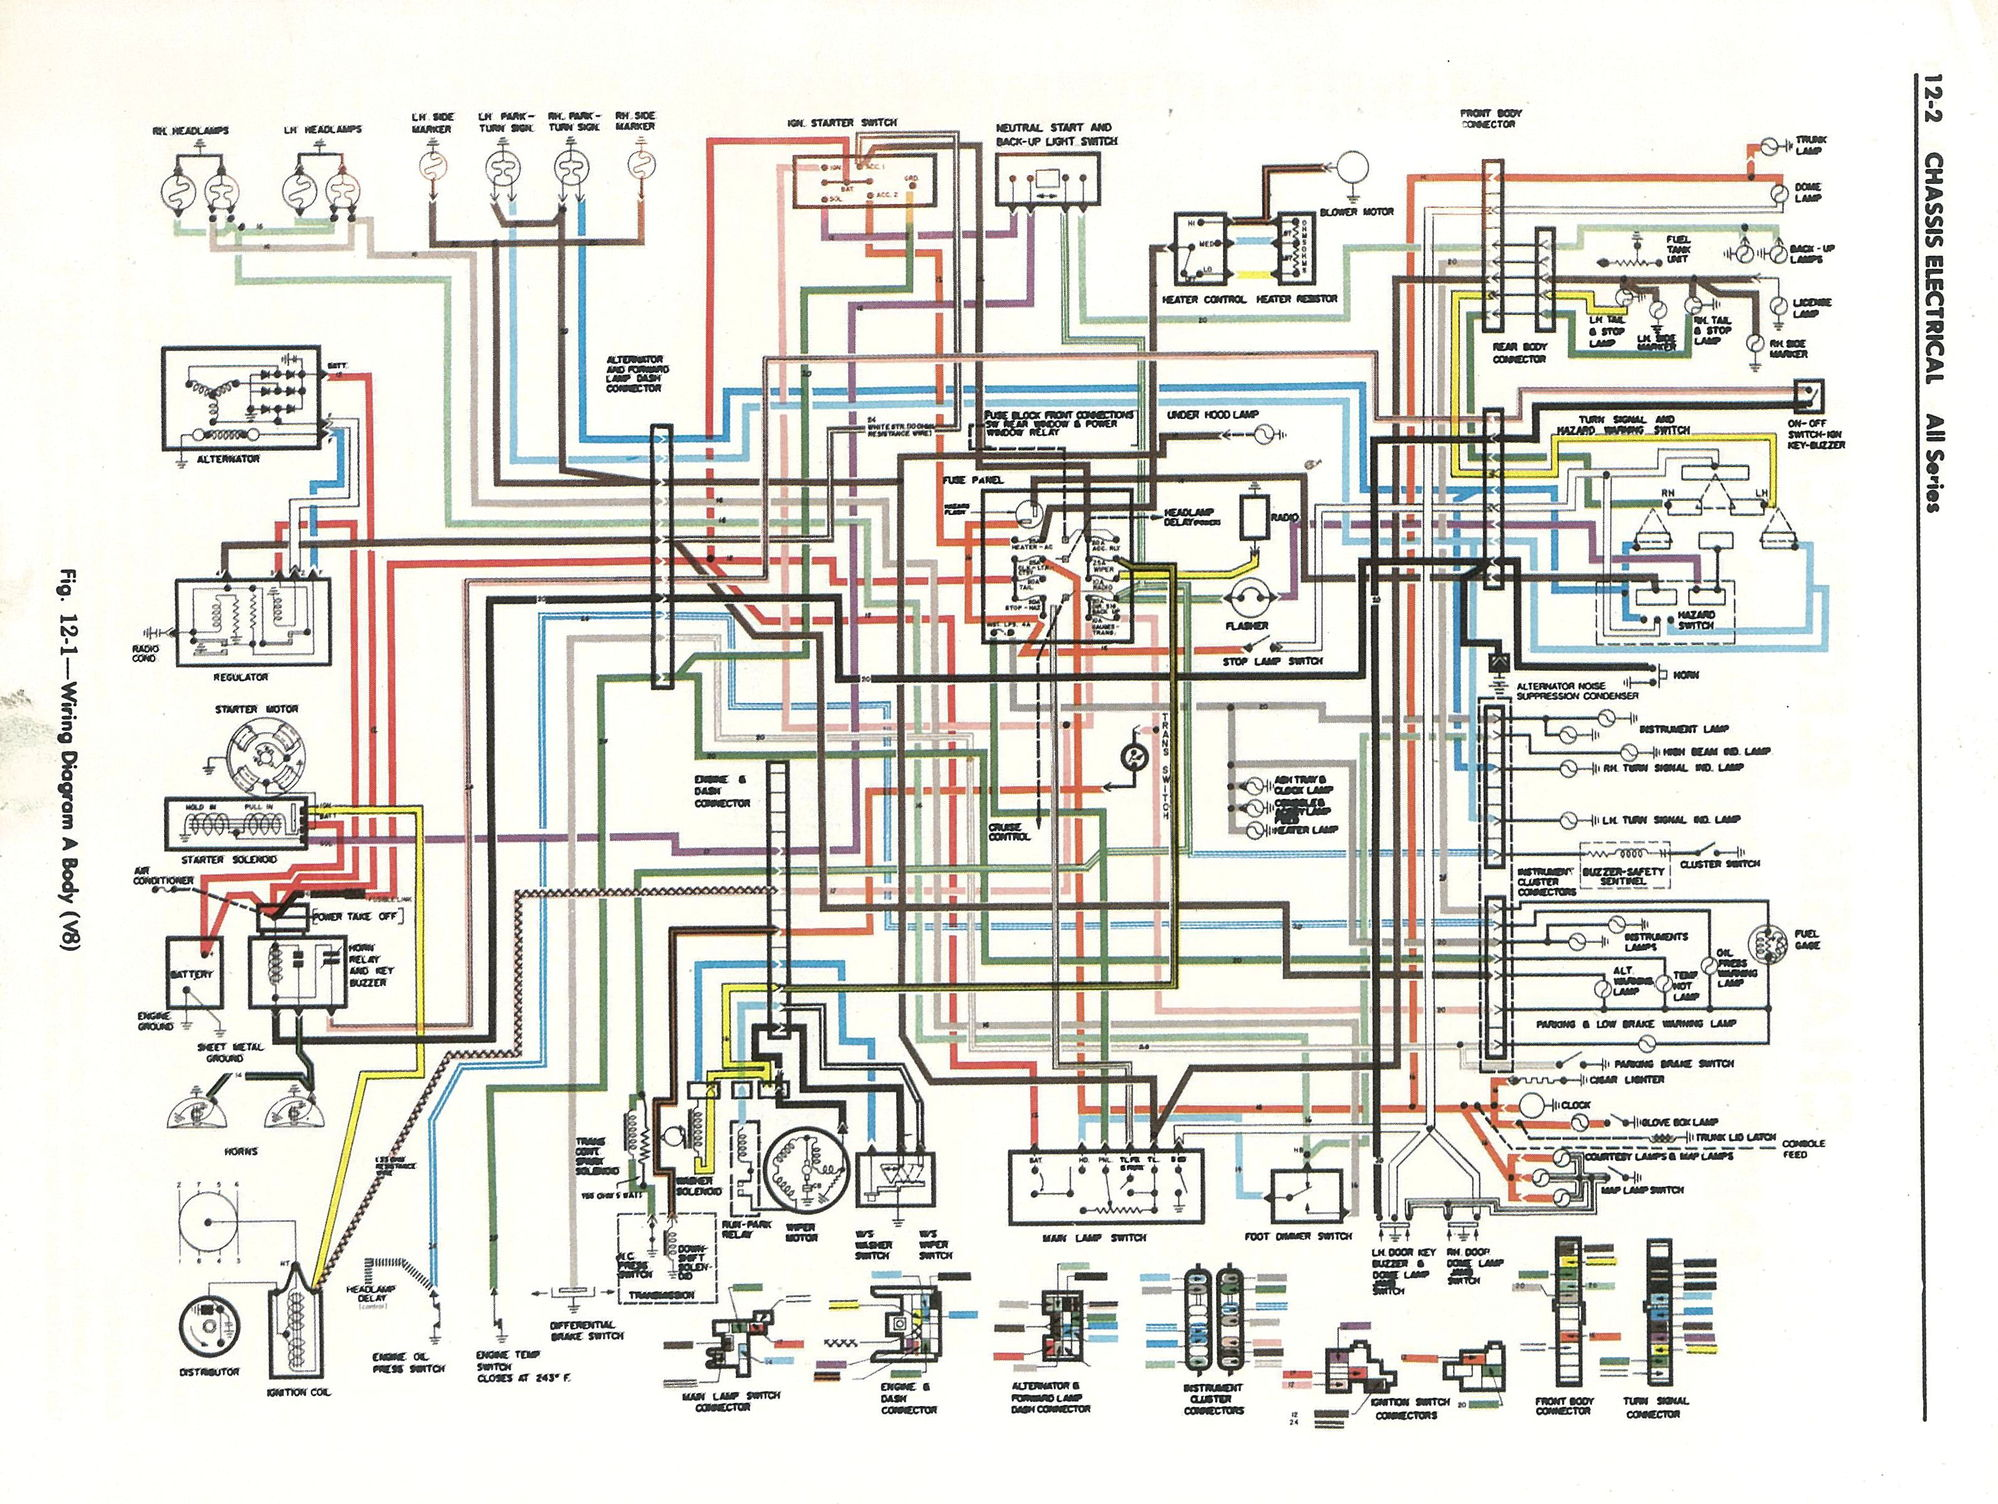 hight resolution of 1971 oldsmobile 442 wiring diagram wiring diagramwire location for lf side marker light classicoldsmobile comthe marker